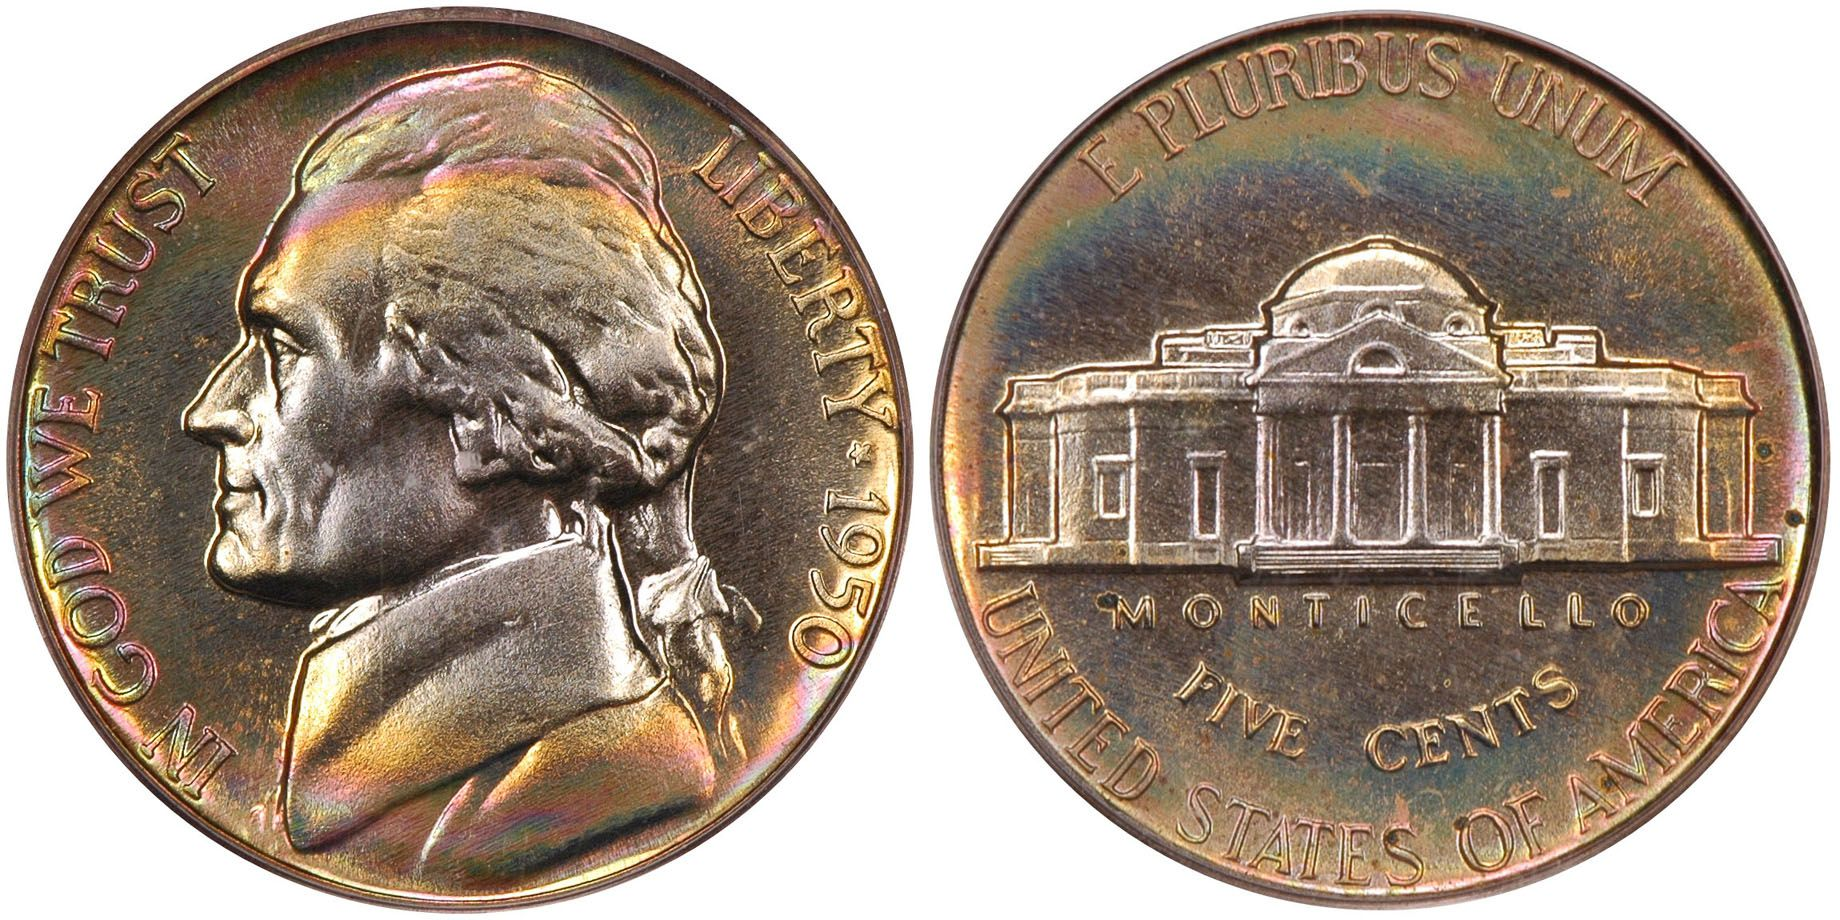 1950 Jefferson Nickel PCGS PR67 - Submitted by Thomas Bush Numismatics & Numismatic Photography (http://www.ivyleaguecoin.com) #CoinOfTheDay #COTD